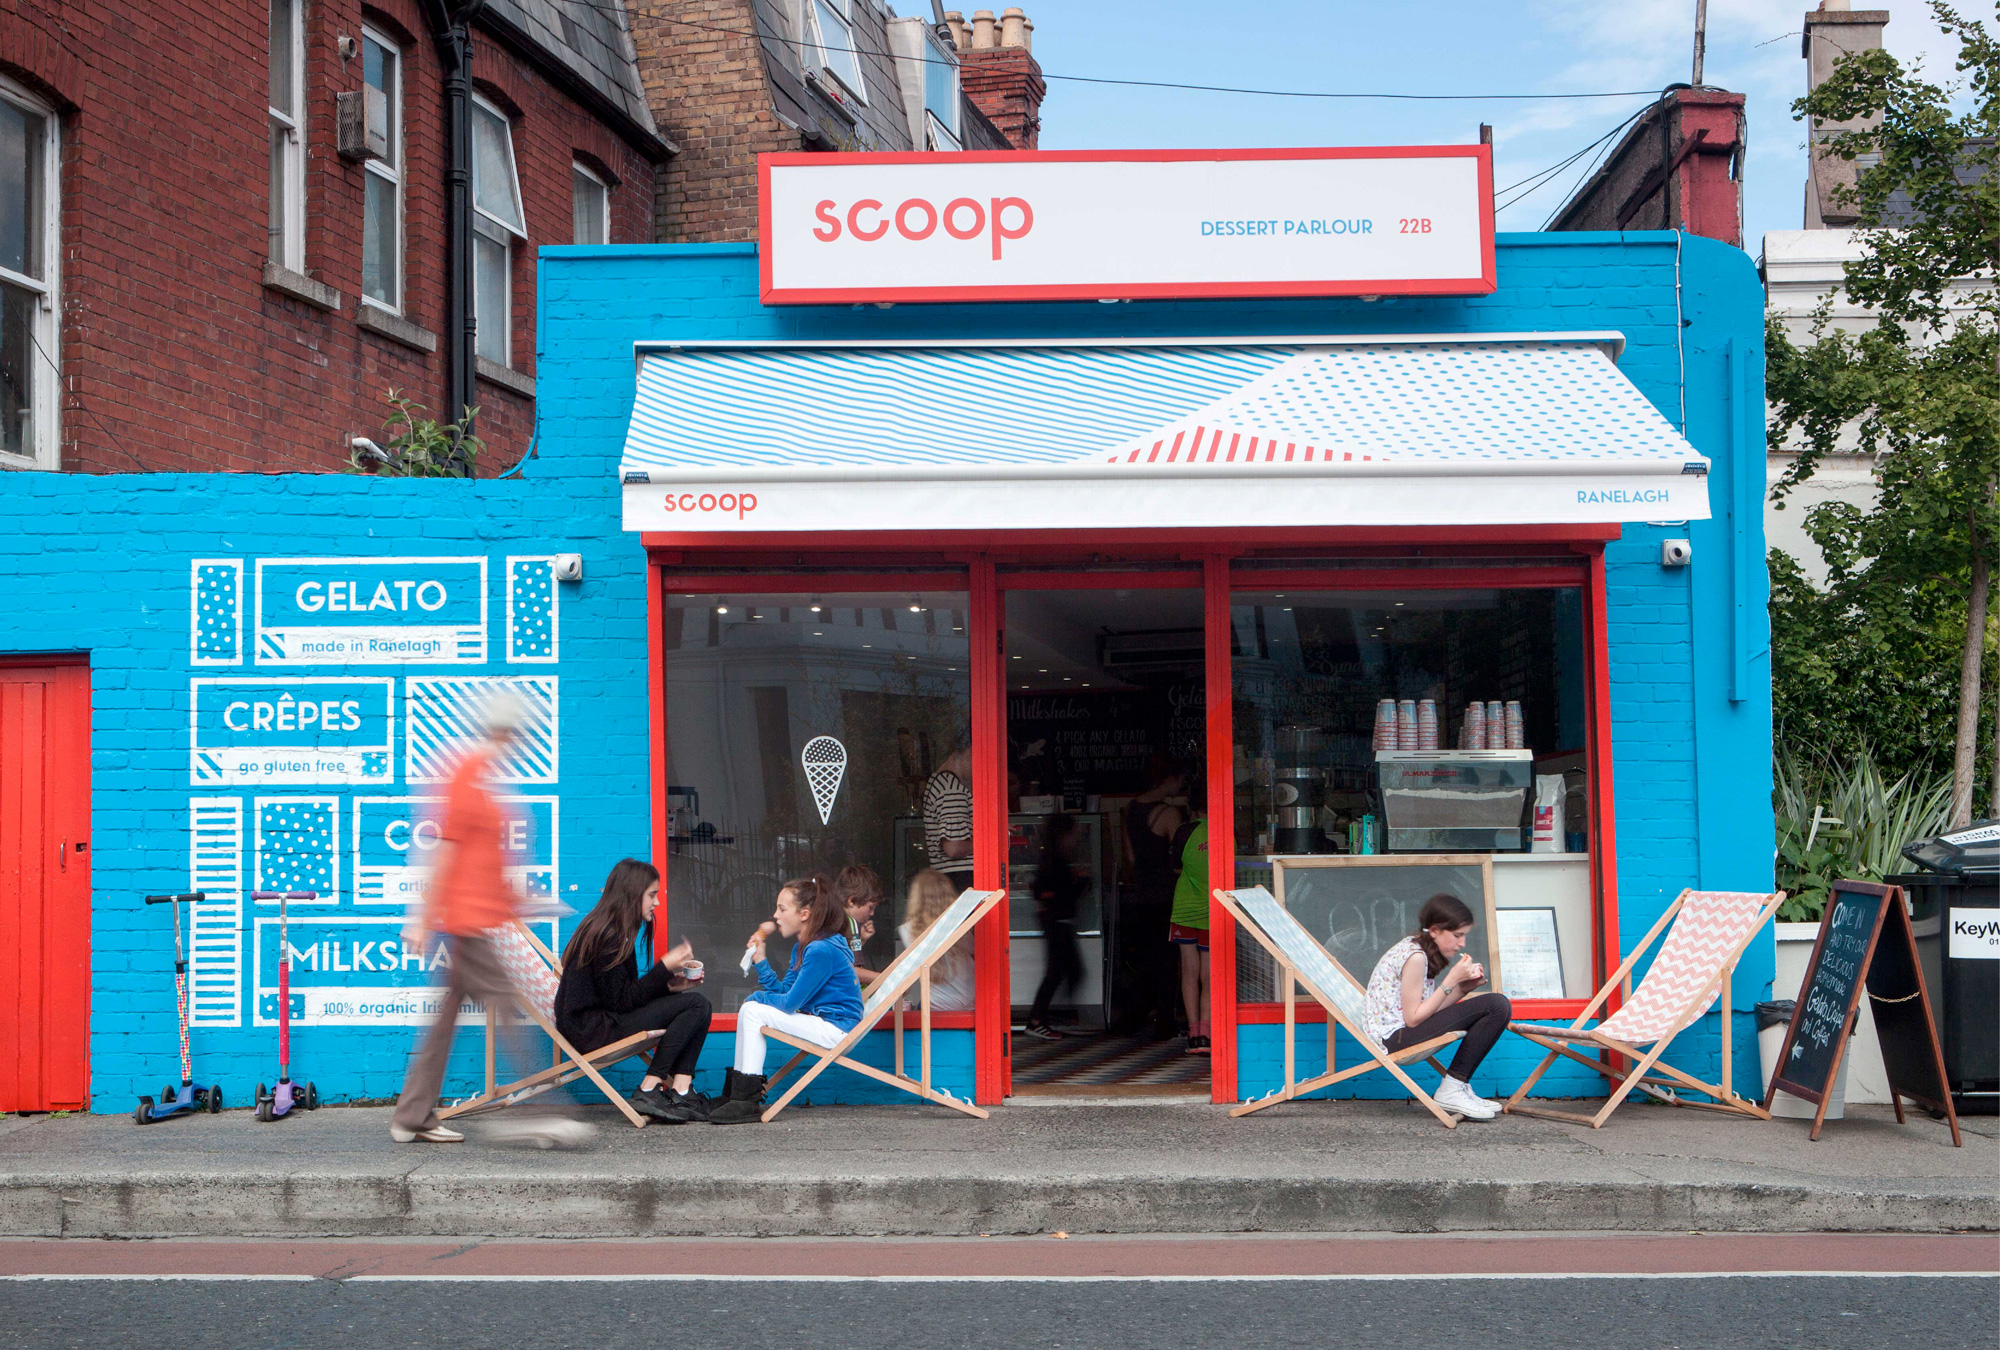 Cover image: Scoop